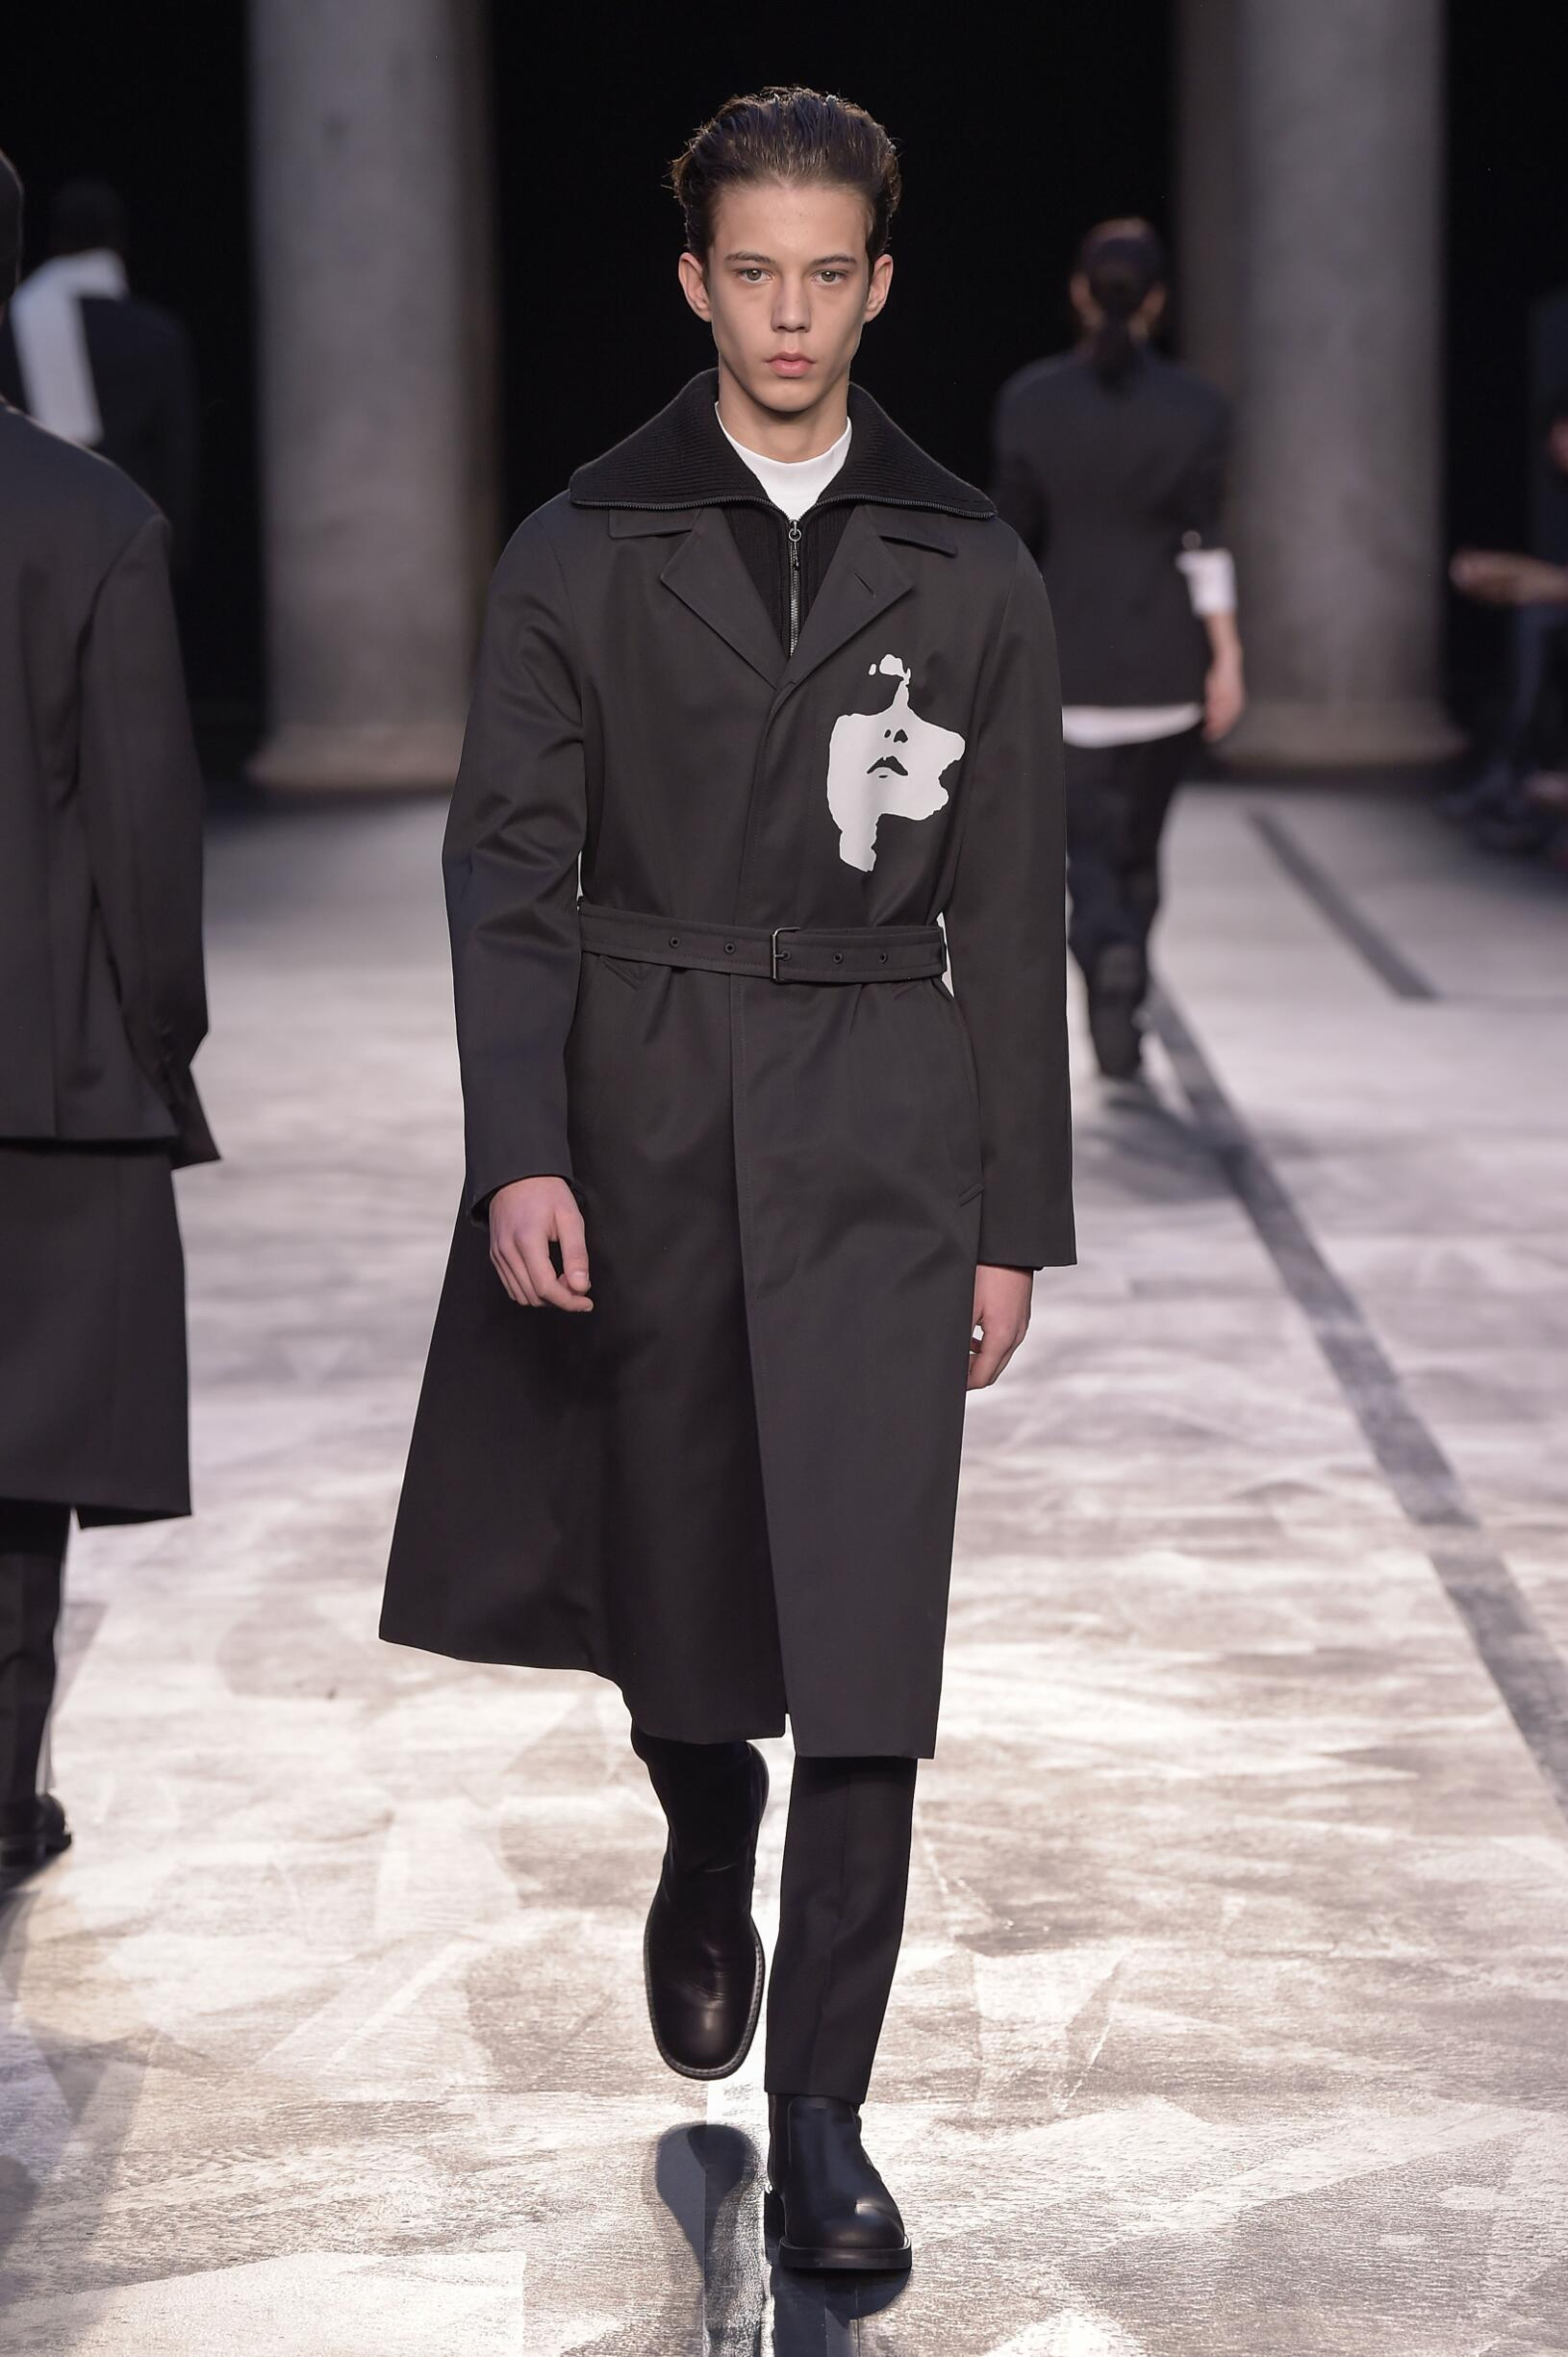 Neil Barrett Fall Winter 2017-18 Mens Collection Milan Fashion Week